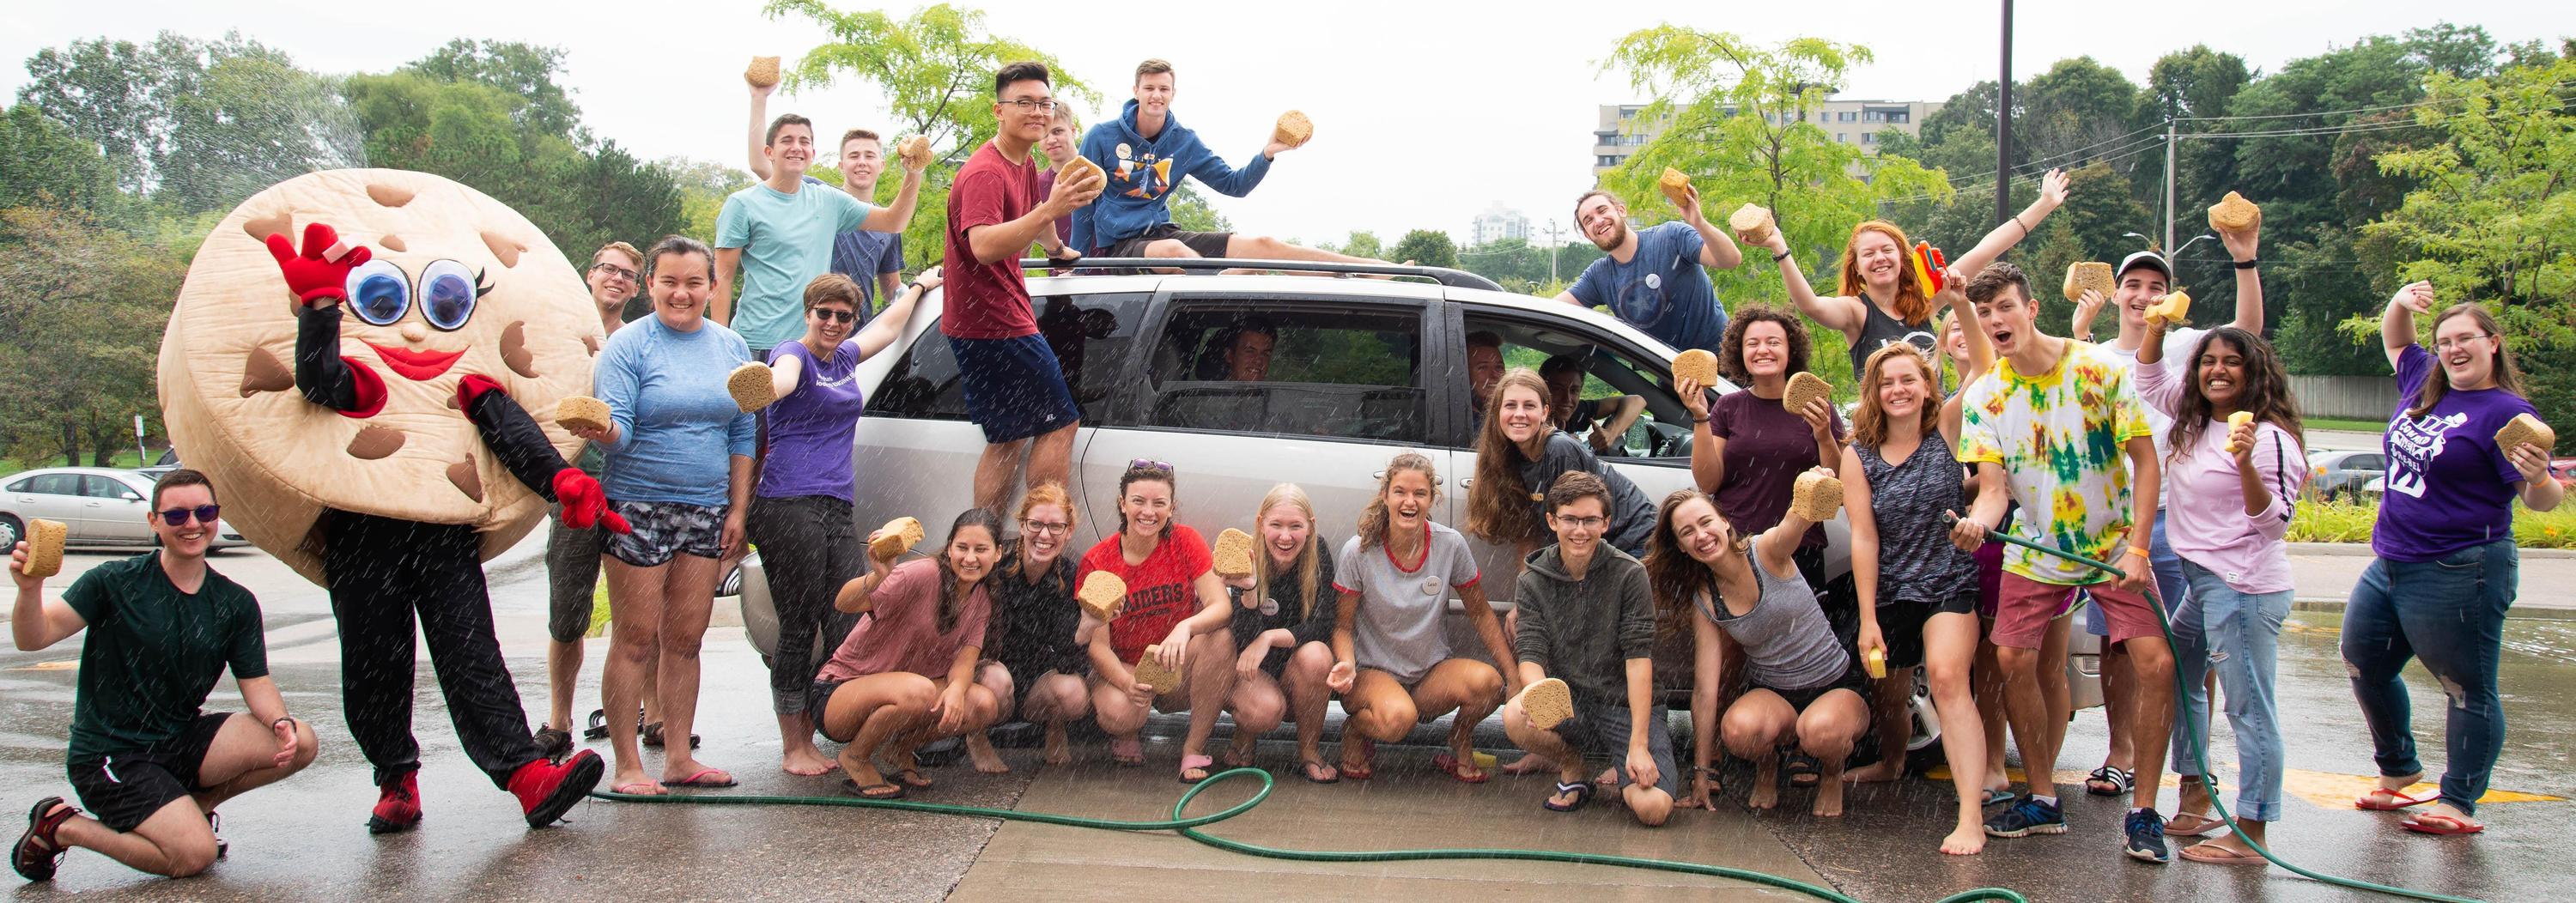 Upper-year students washing a car at the free car wash that they held during Orientation Week.